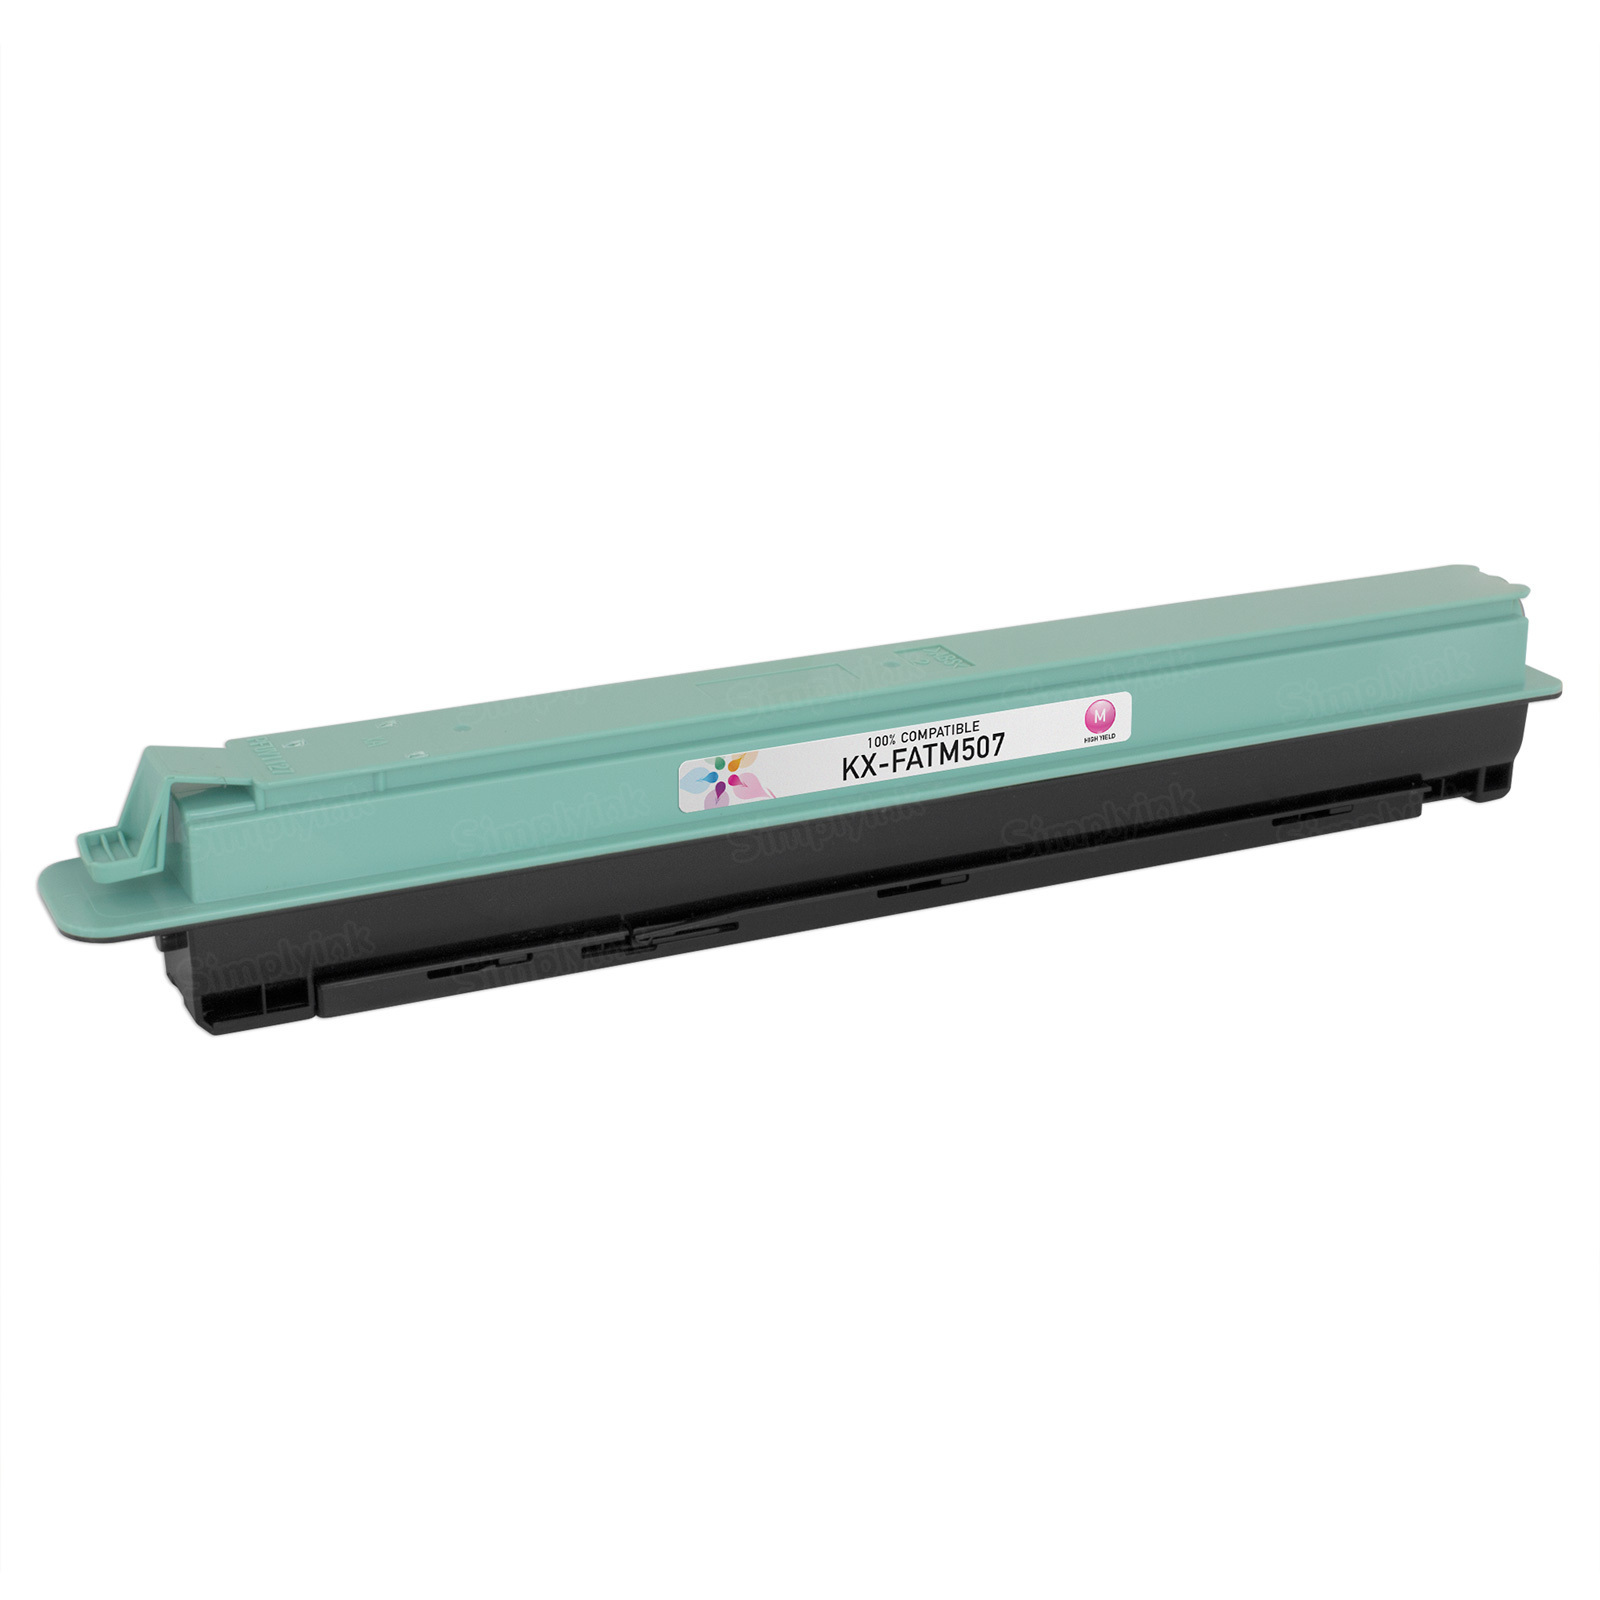 Remanufactured KX-FATM507 Magenta Toner for the Panasonic KX-MC6040 and KX-MC6020